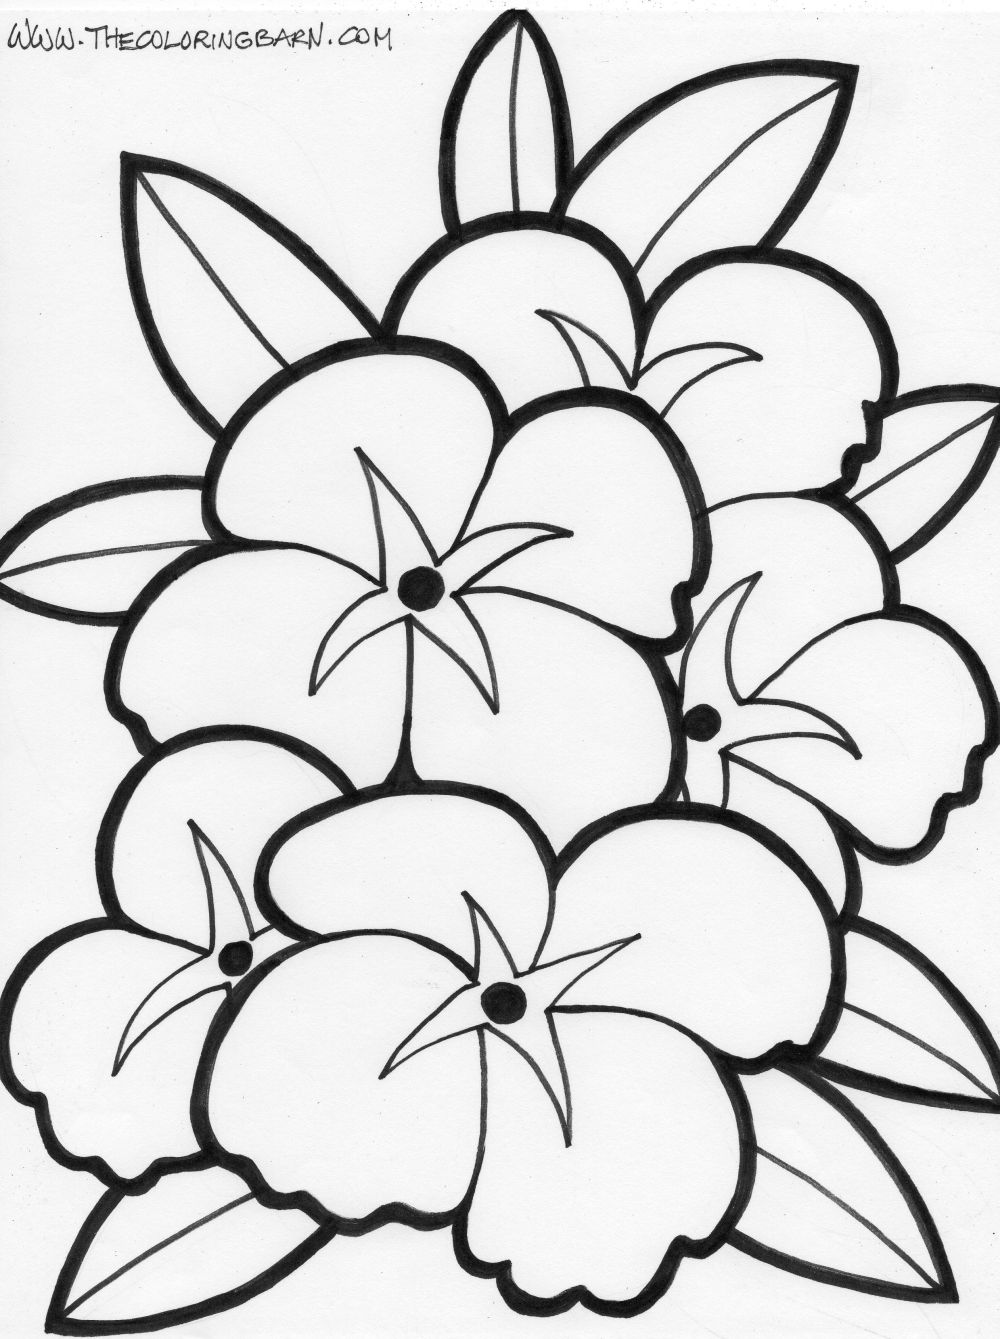 Colorful Flowers Drawing at GetDrawings.com | Free for personal use ...